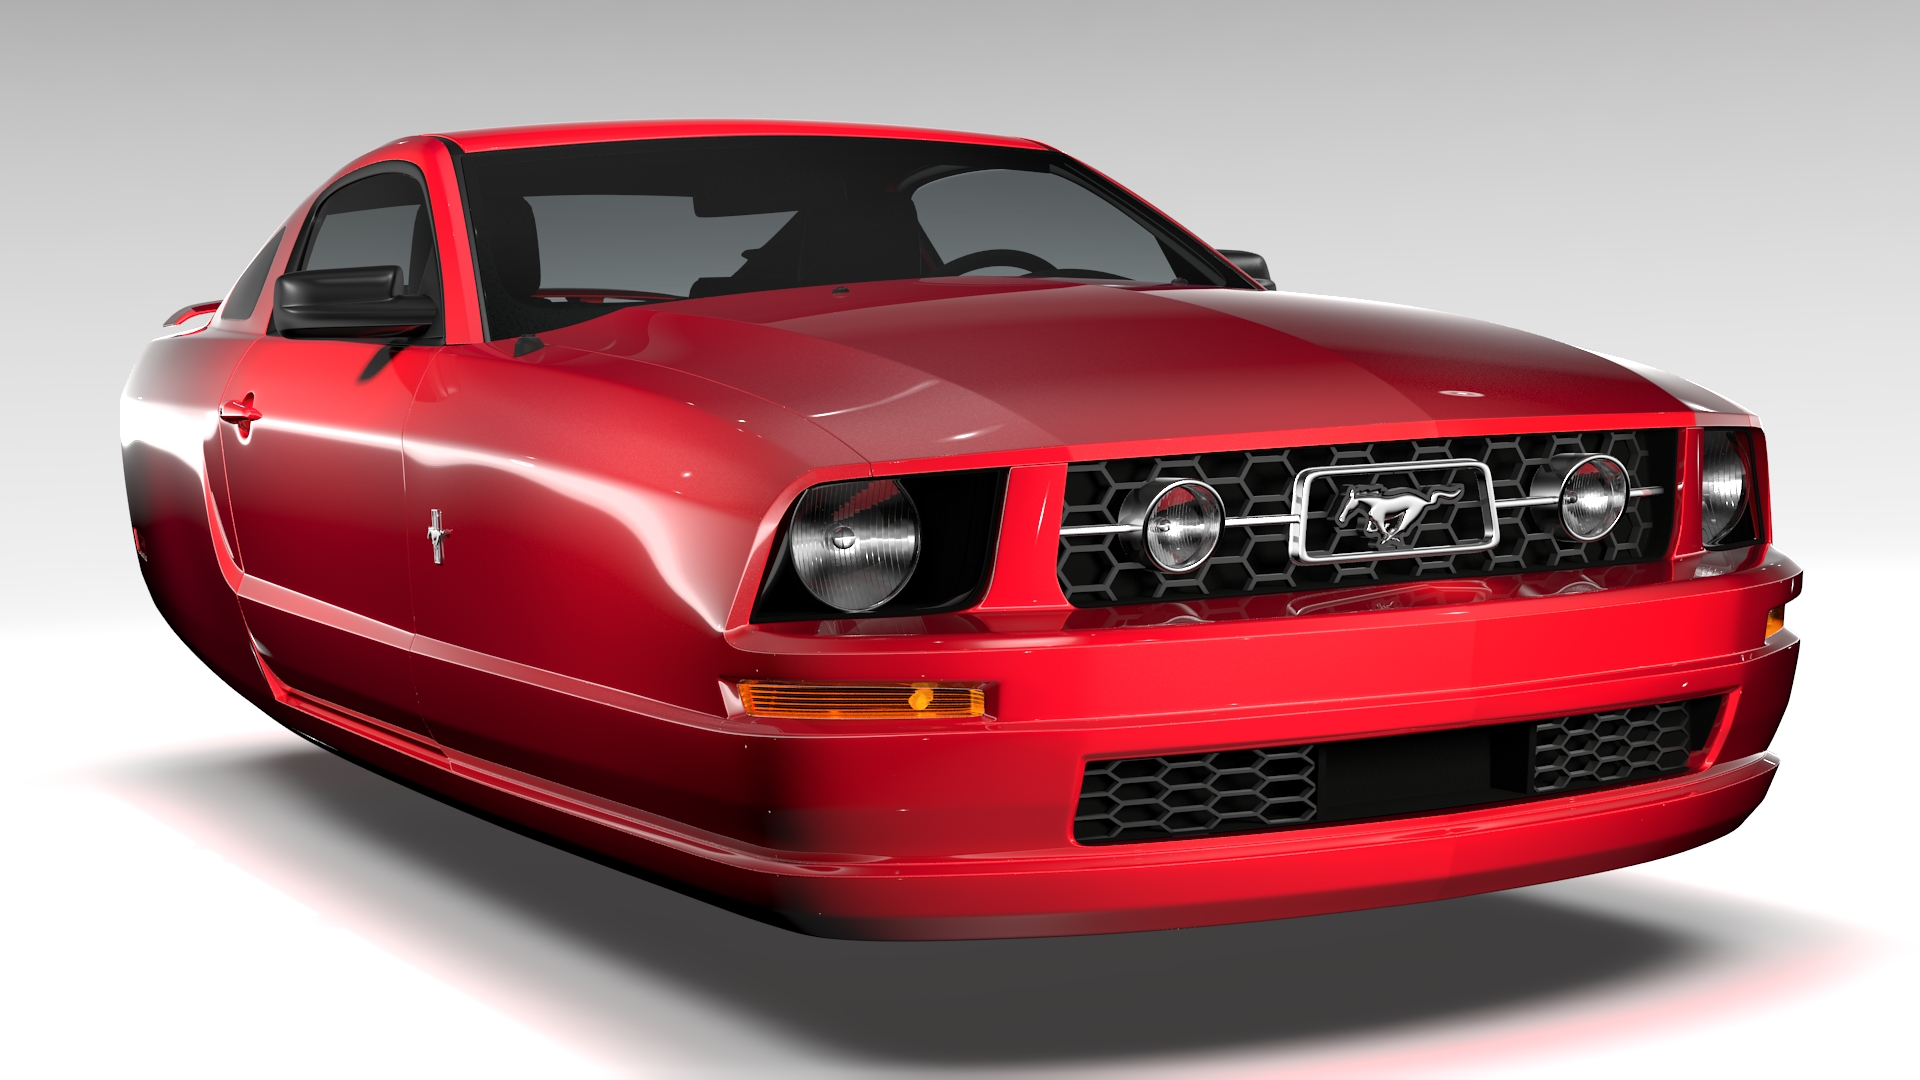 ford mustang v6 pony 2006 flying 3d model 3ds max fbx c4d lwo ma mb hrc xsi obj 221398